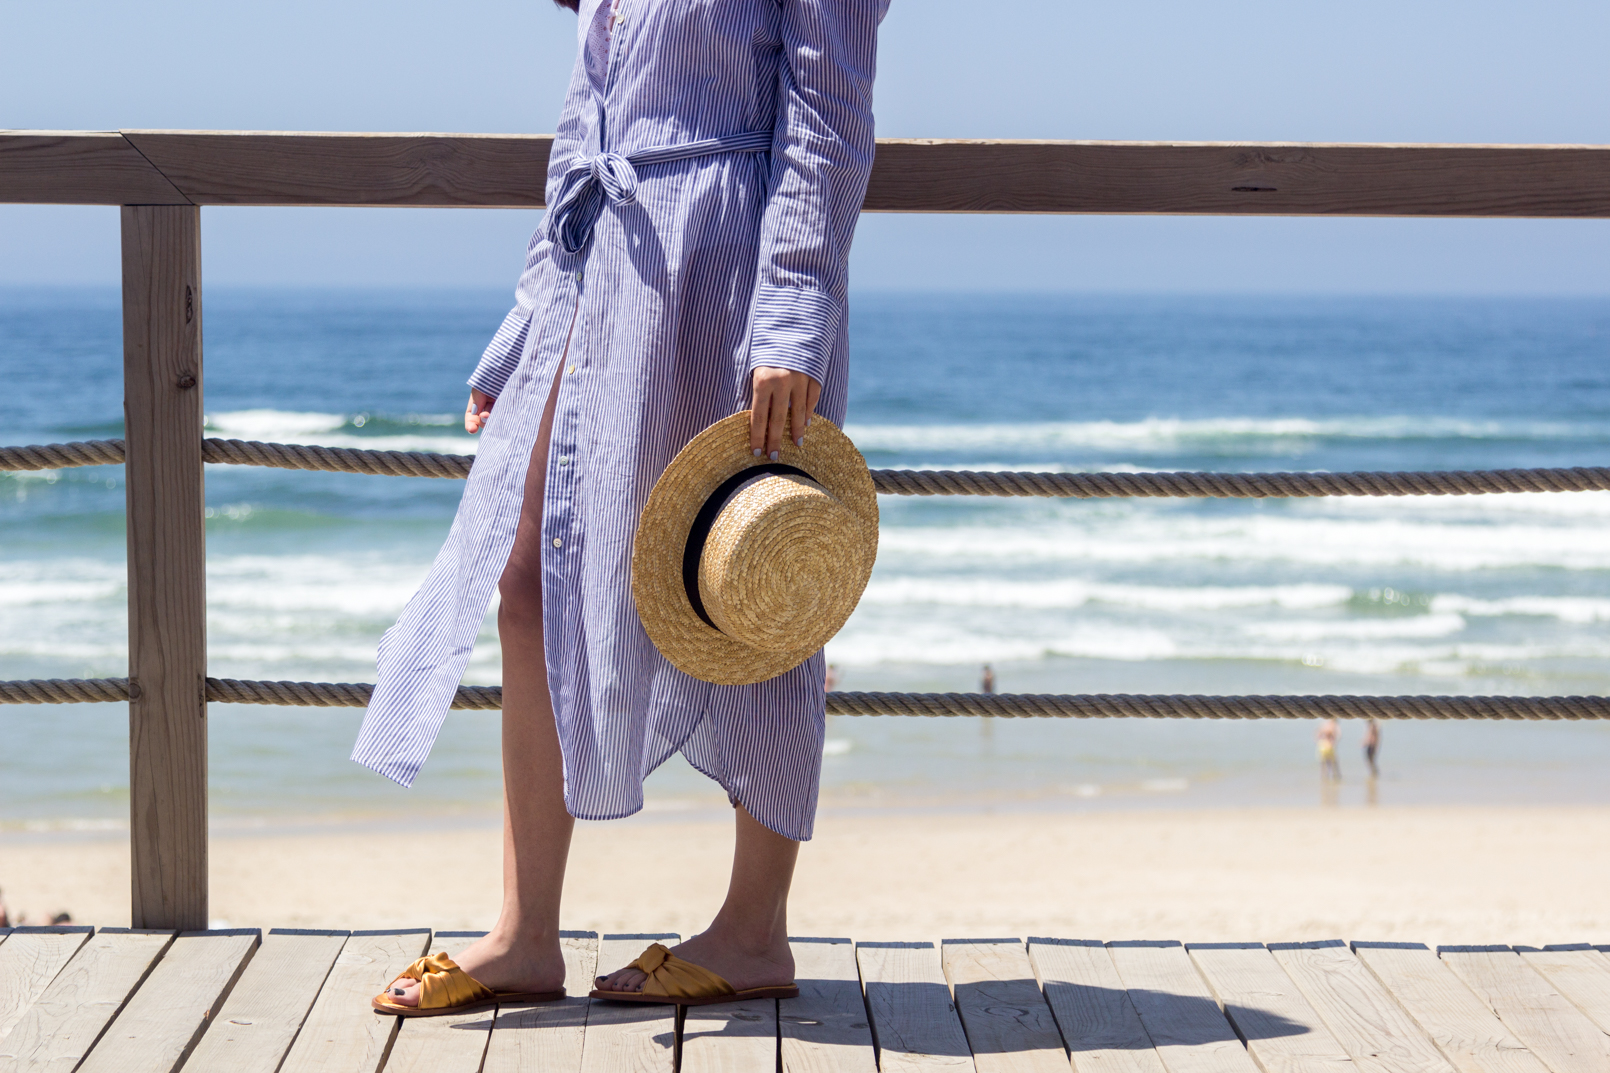 Le Fashionaire blogger catarine martins straw black ribbon stradivarius hat long oversized striped beach oysho shirt beach sea sun summer 5441 EN blogger catarine martins straw black ribbon stradivarius hat long oversized striped beach oysho shirt beach sea sun summer 5441 EN